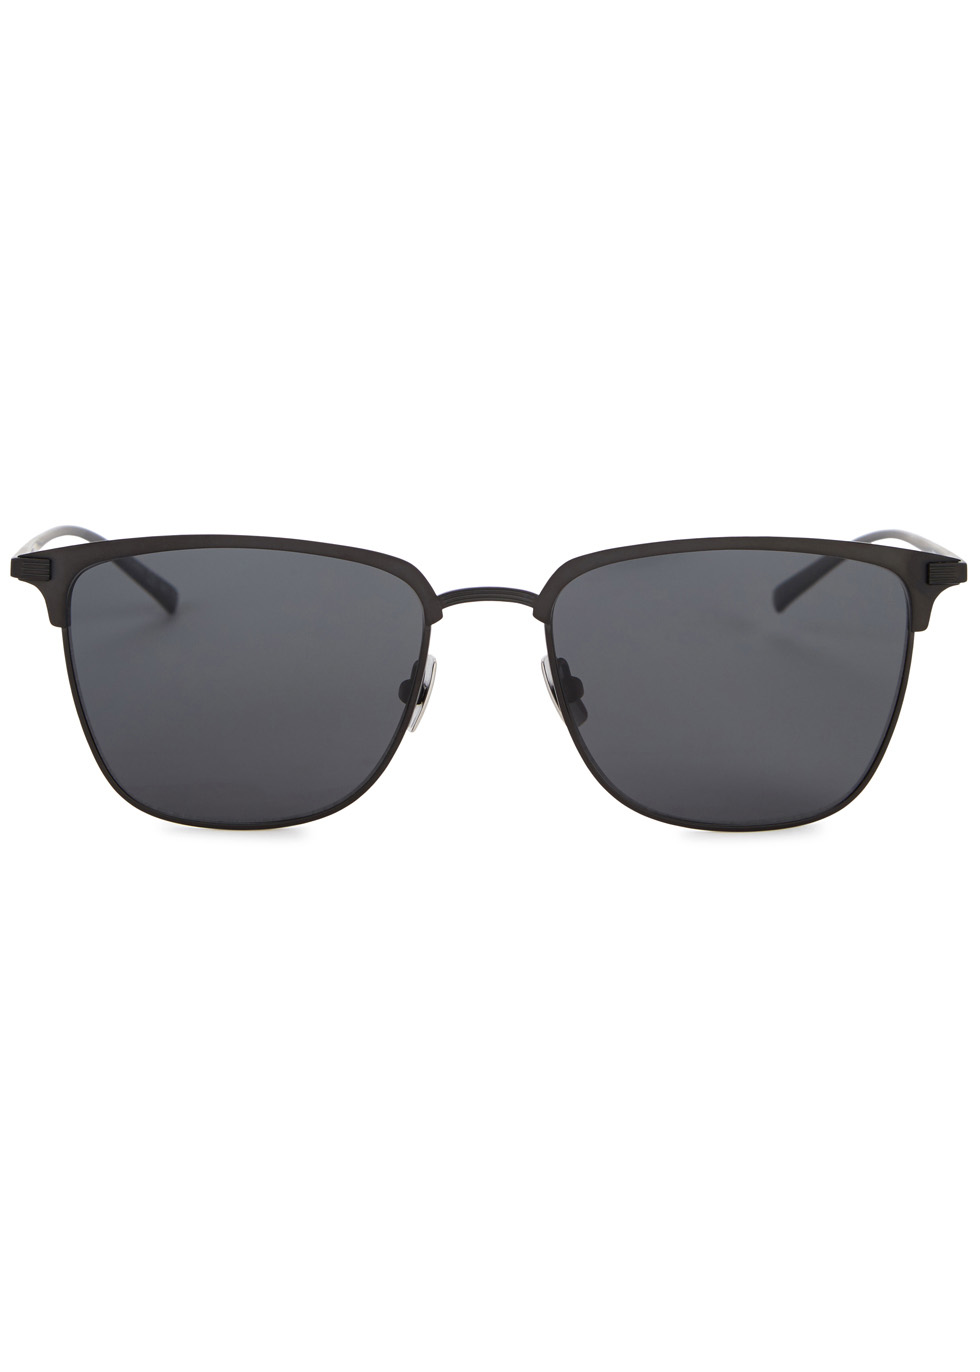 SL150T black clubmaster-style sunglasses - Saint Laurent